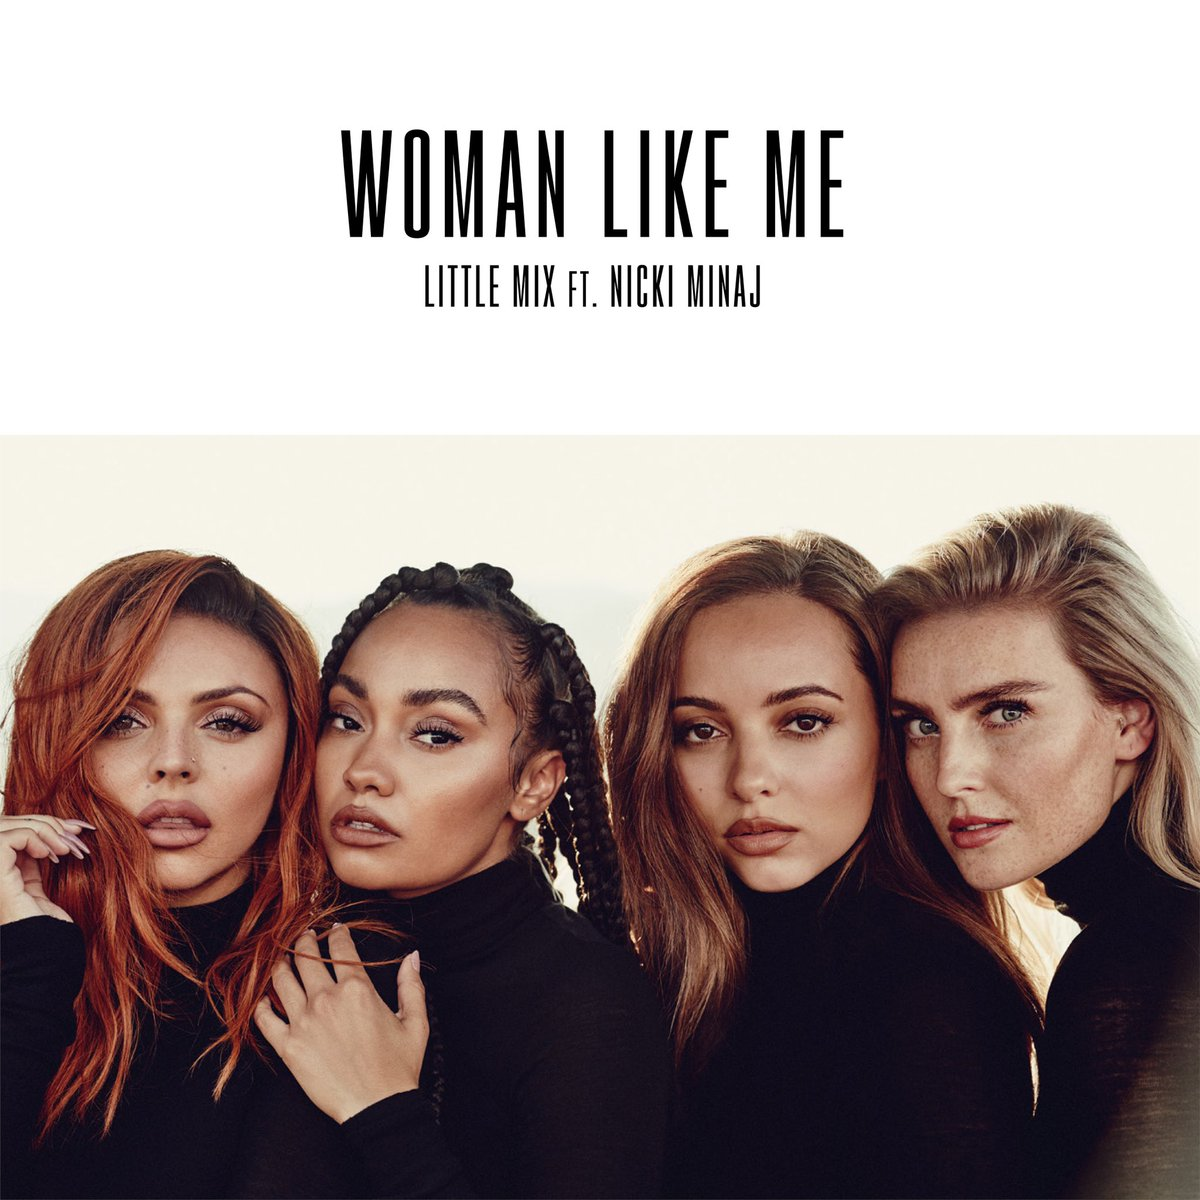 #WomanLikeMe ft @NICKIMINAJ  out 12.10.18. the girls x